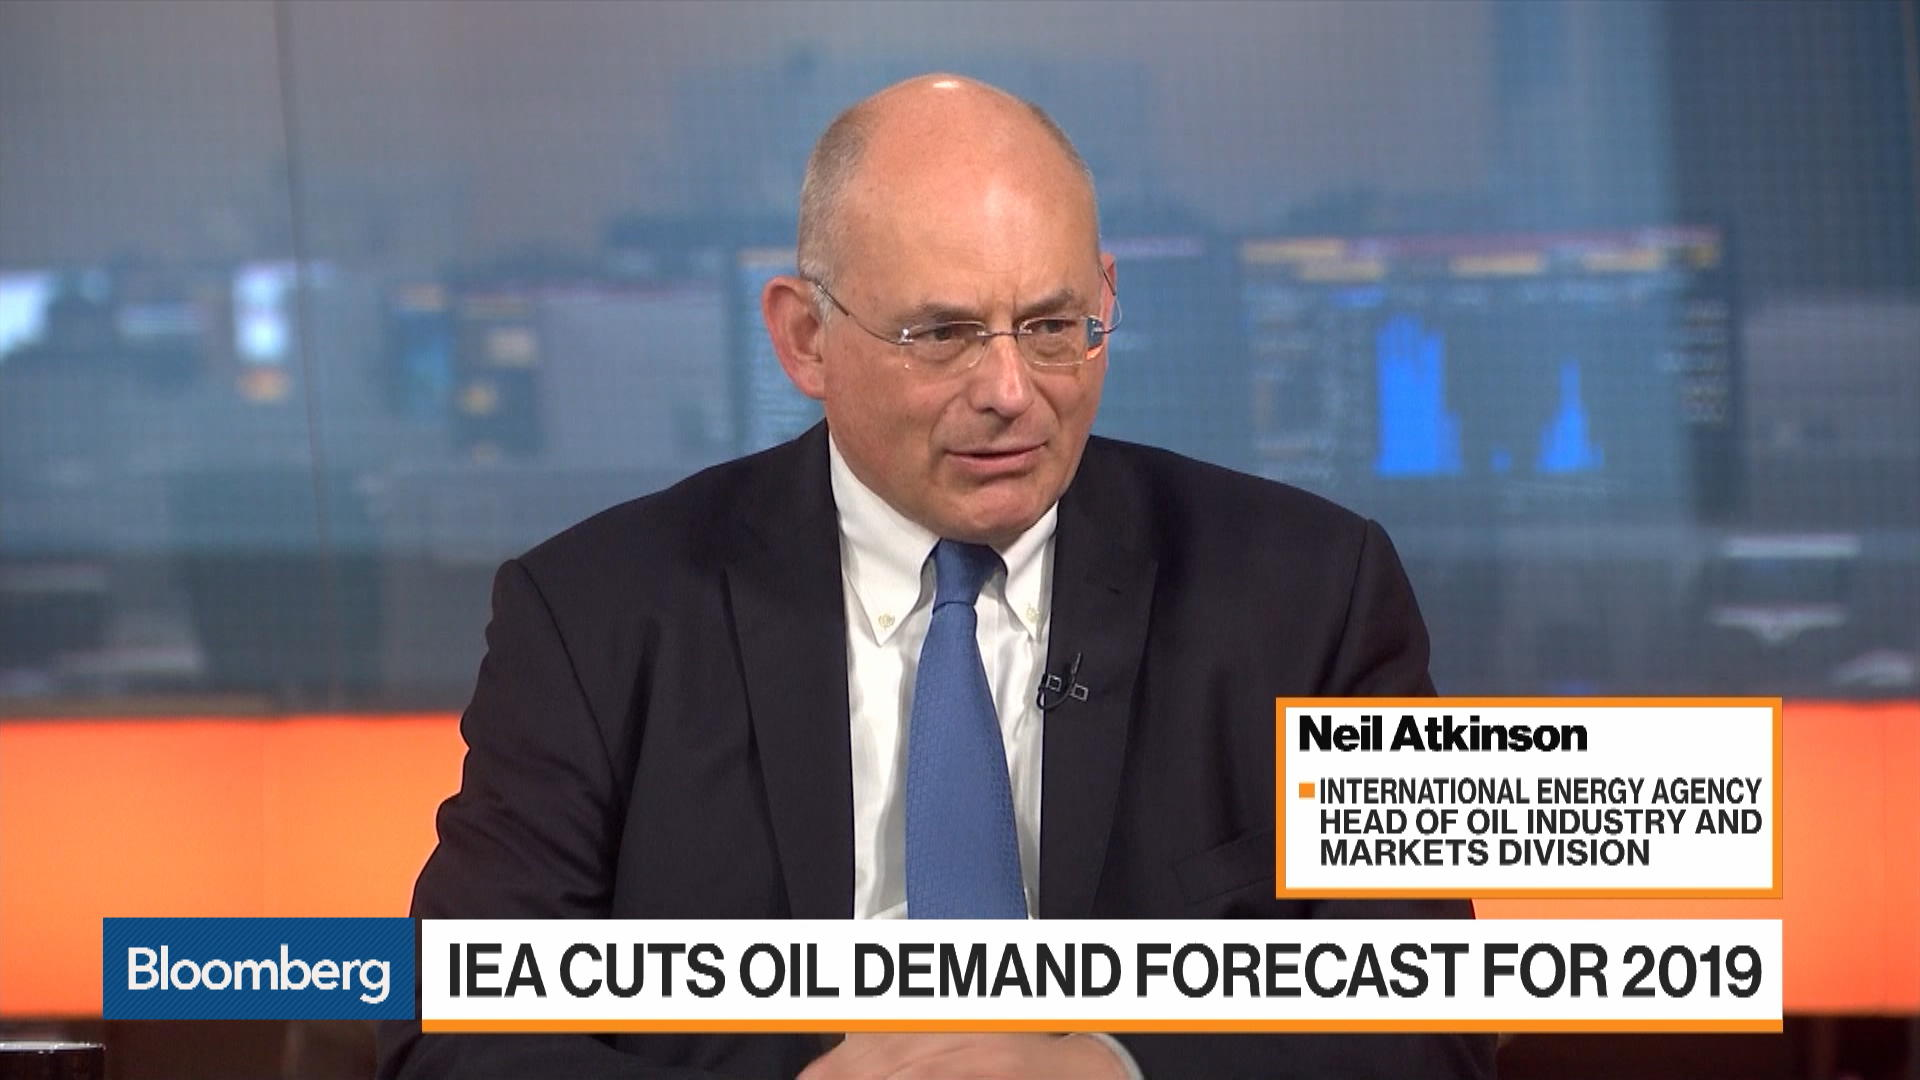 IEA Head of Oil Industry and Markets Division Neil Atkinson on Oil Demand, Markets, Saudi Attack